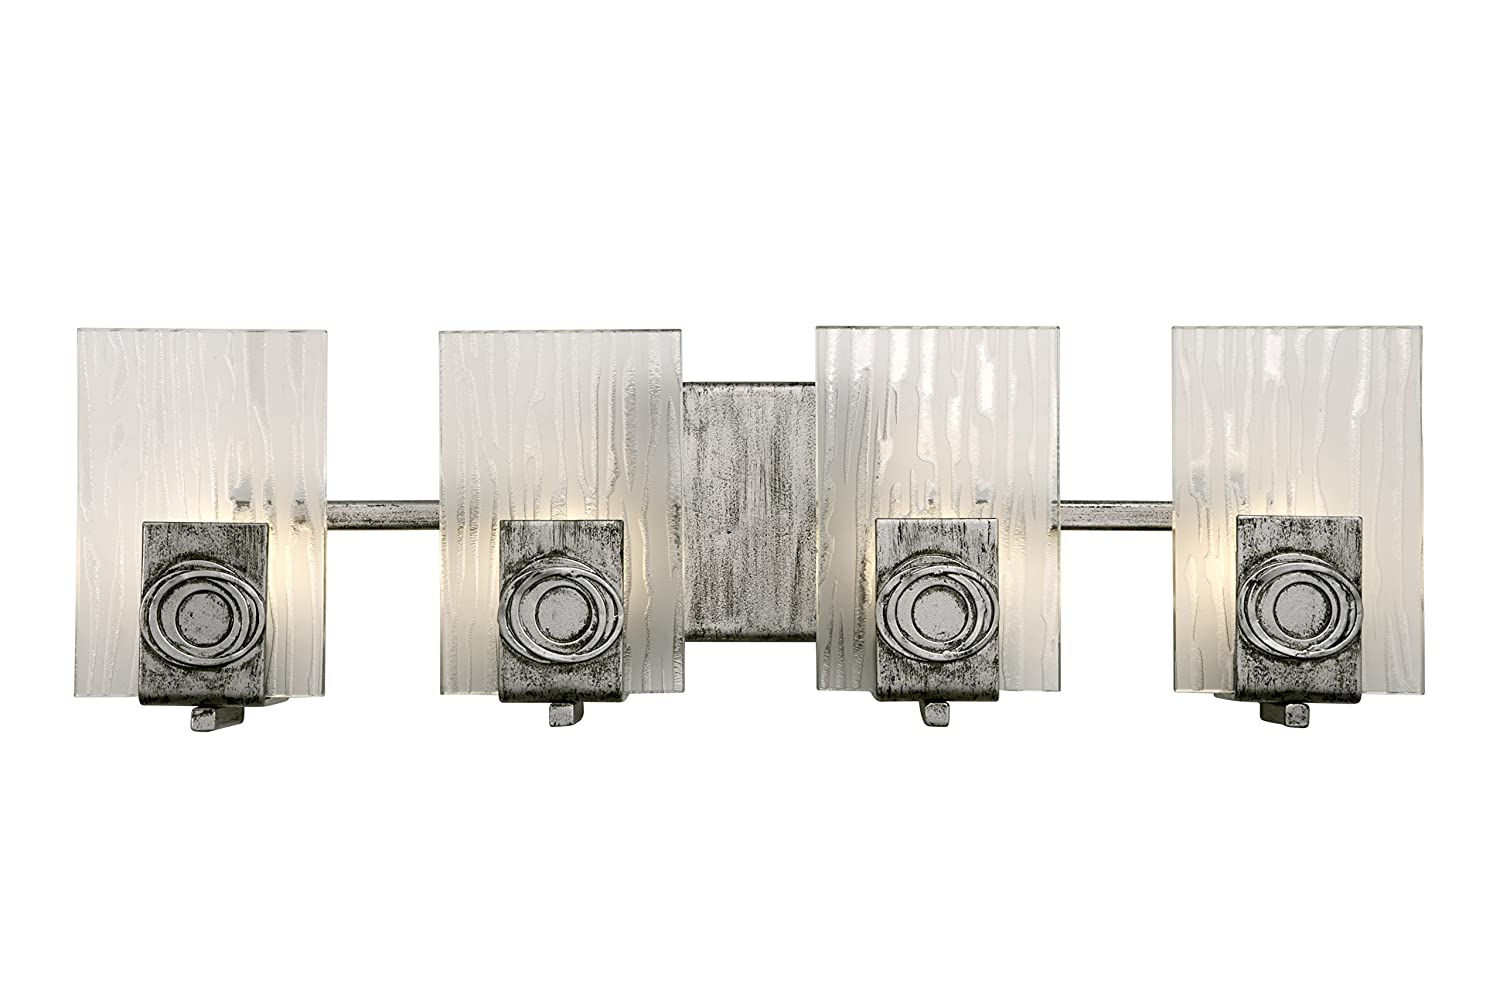 Varaluz 182B04 Polar 4-Light Vanity – Blackened Silver Finish with Ice Crystal Recycled Glass